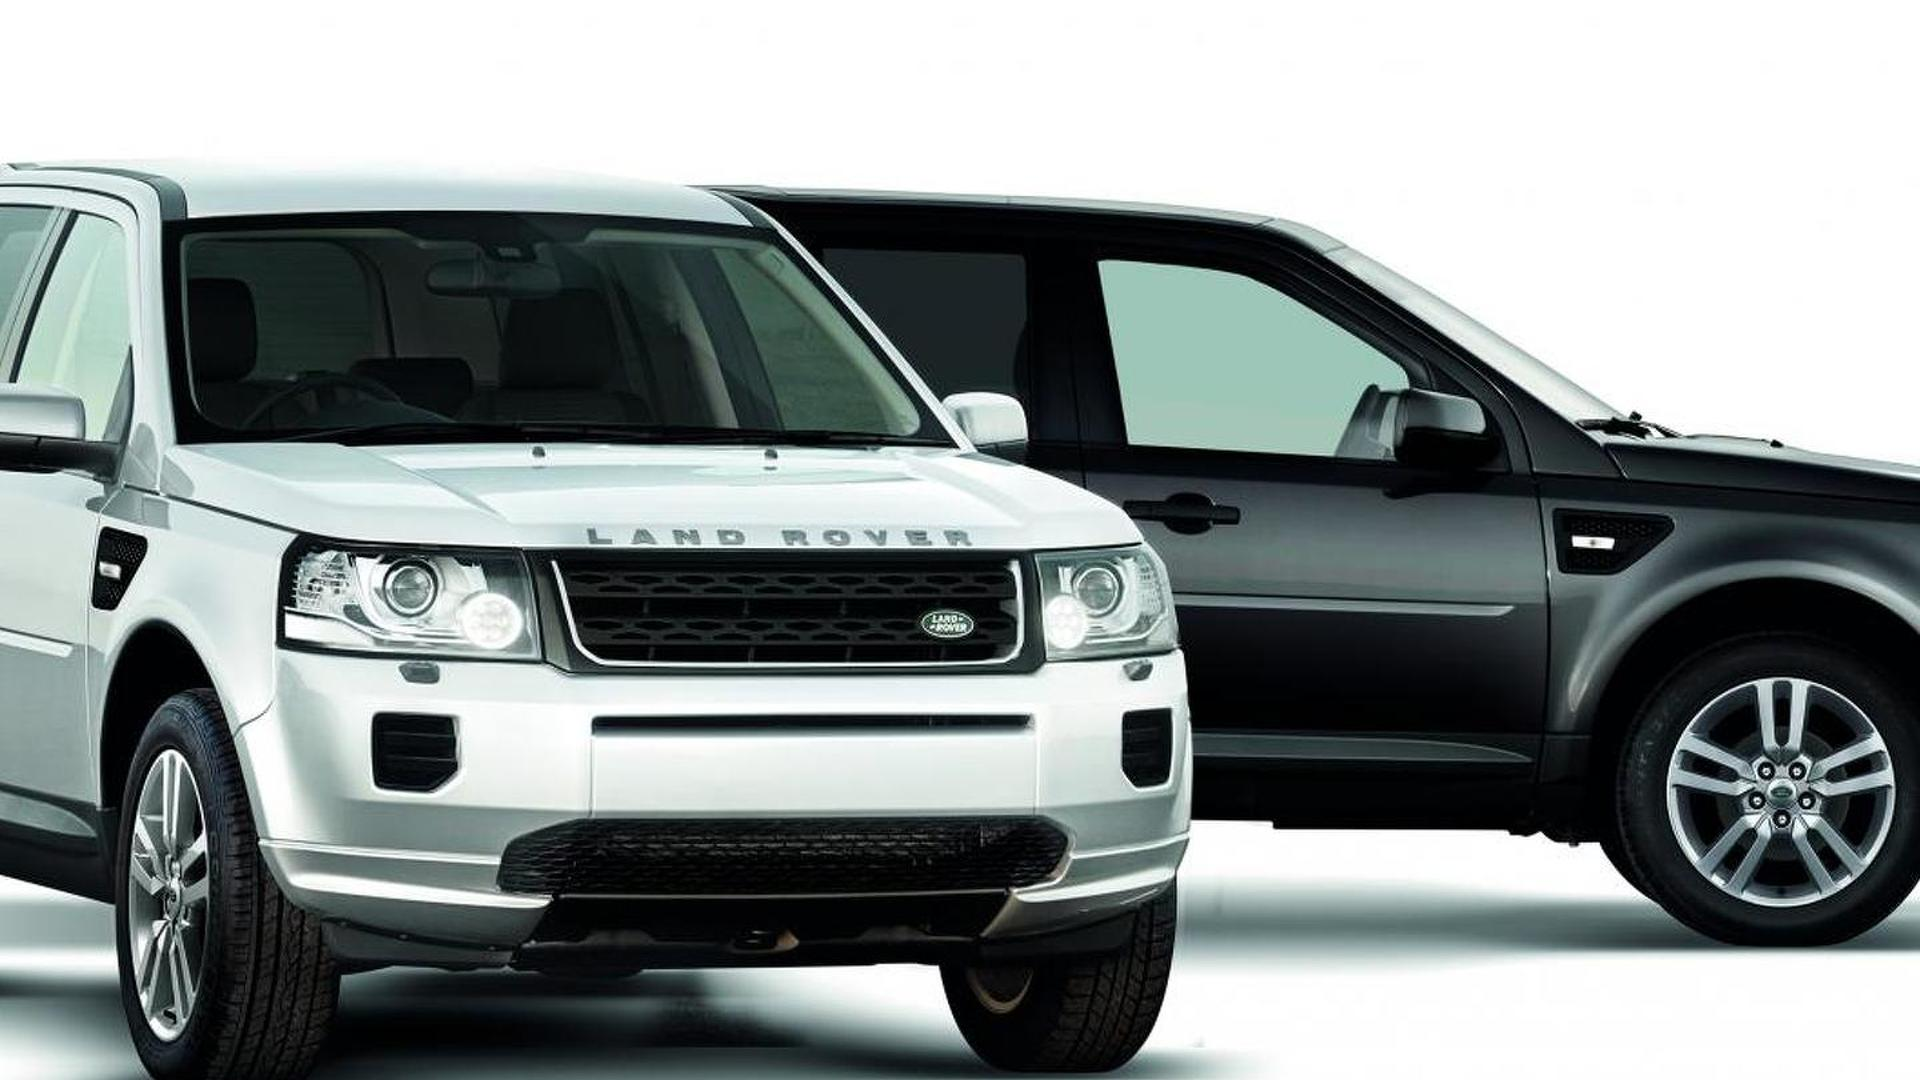 land rover freelander 2 News and Opinion